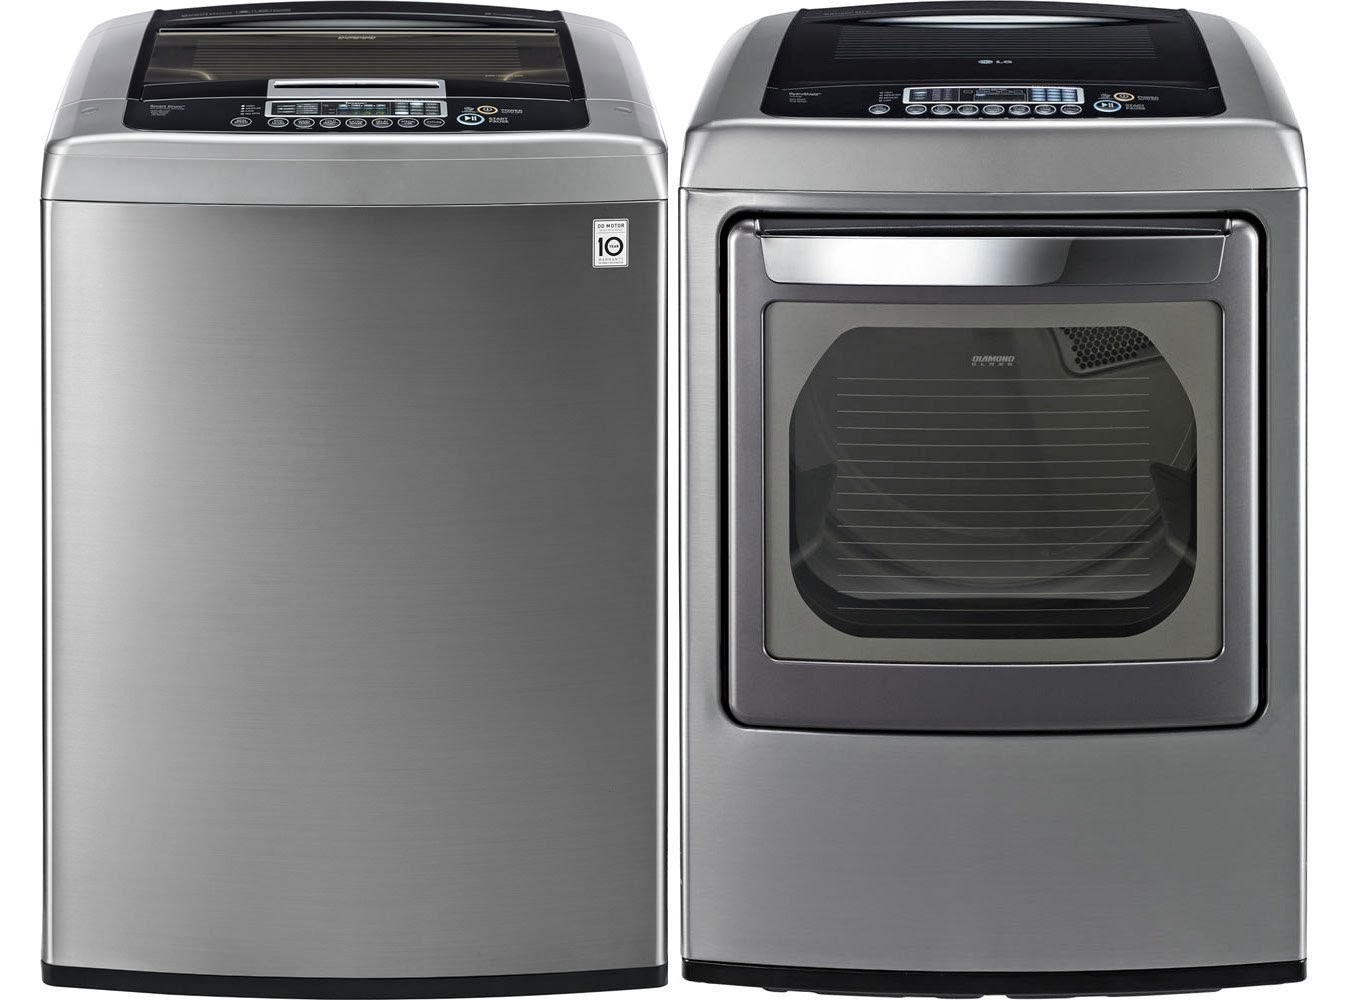 Best Price On Front Load Washer And Dryer Used Washer And Dryer